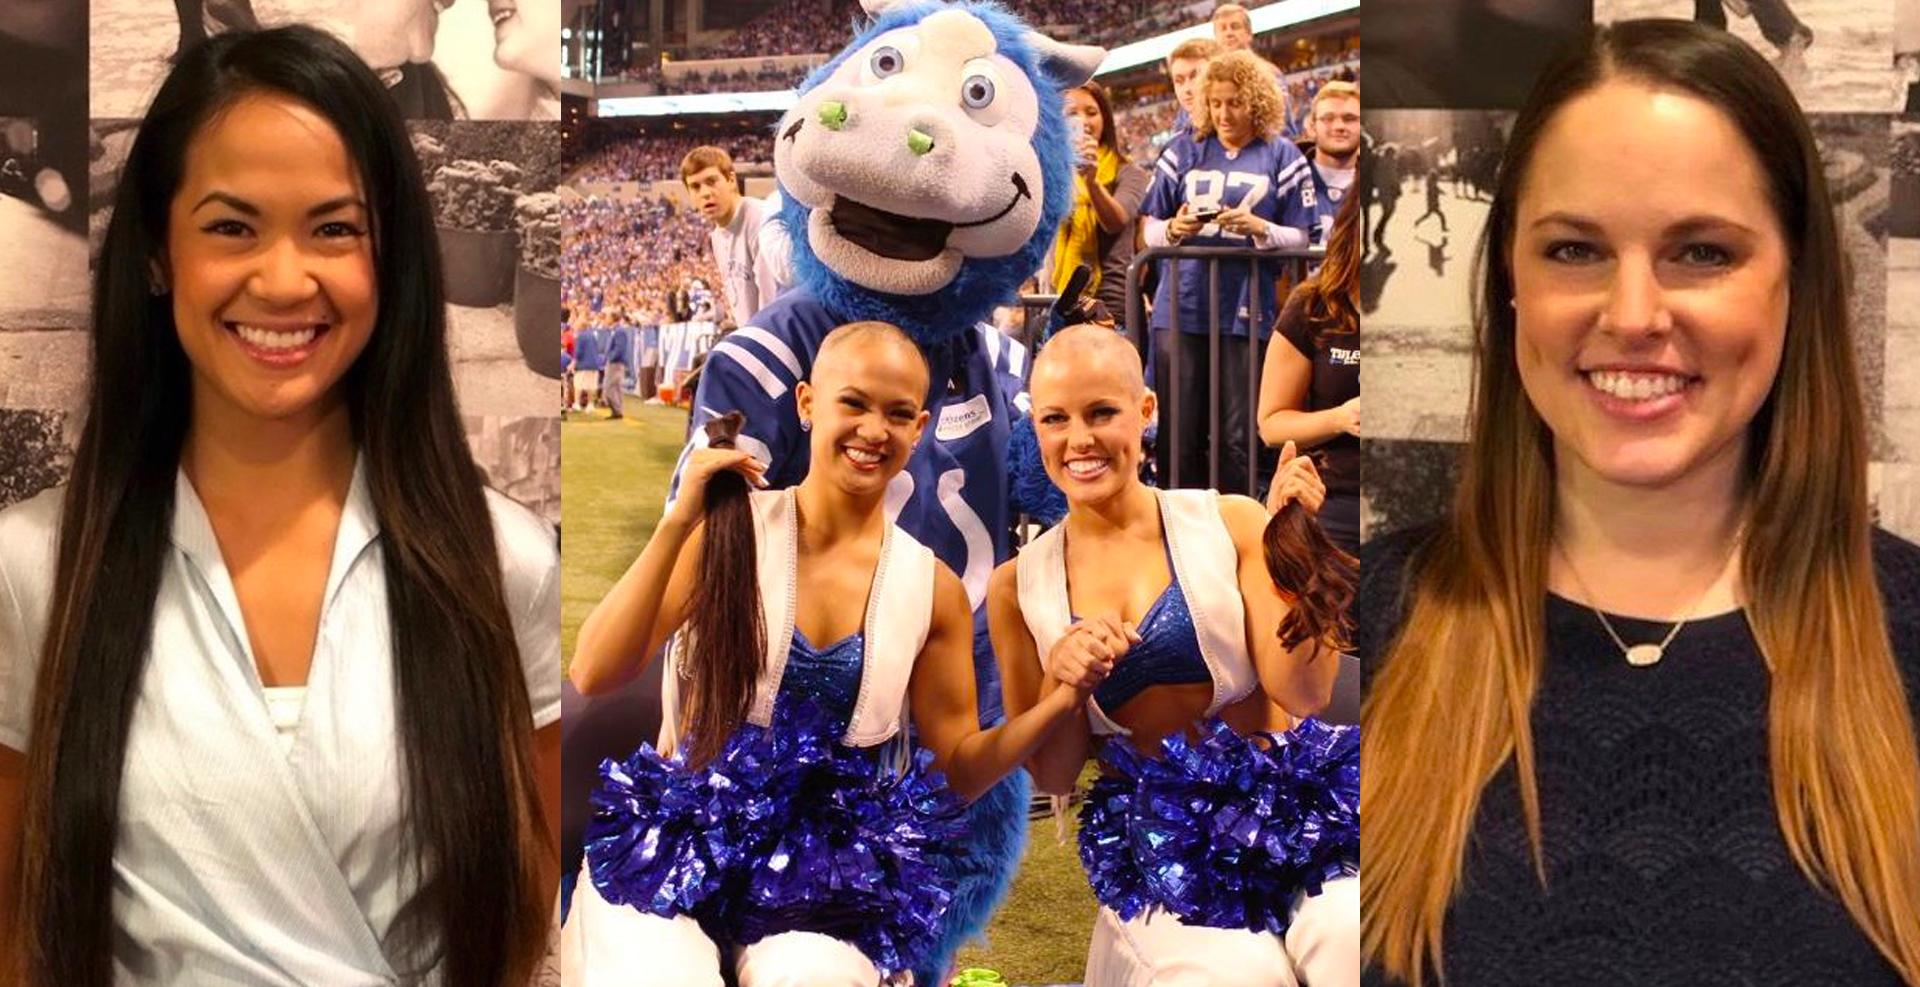 [DETAILS] Five Years After Chuckstrong, Former Colts Cheerleaders Donate Their Hair